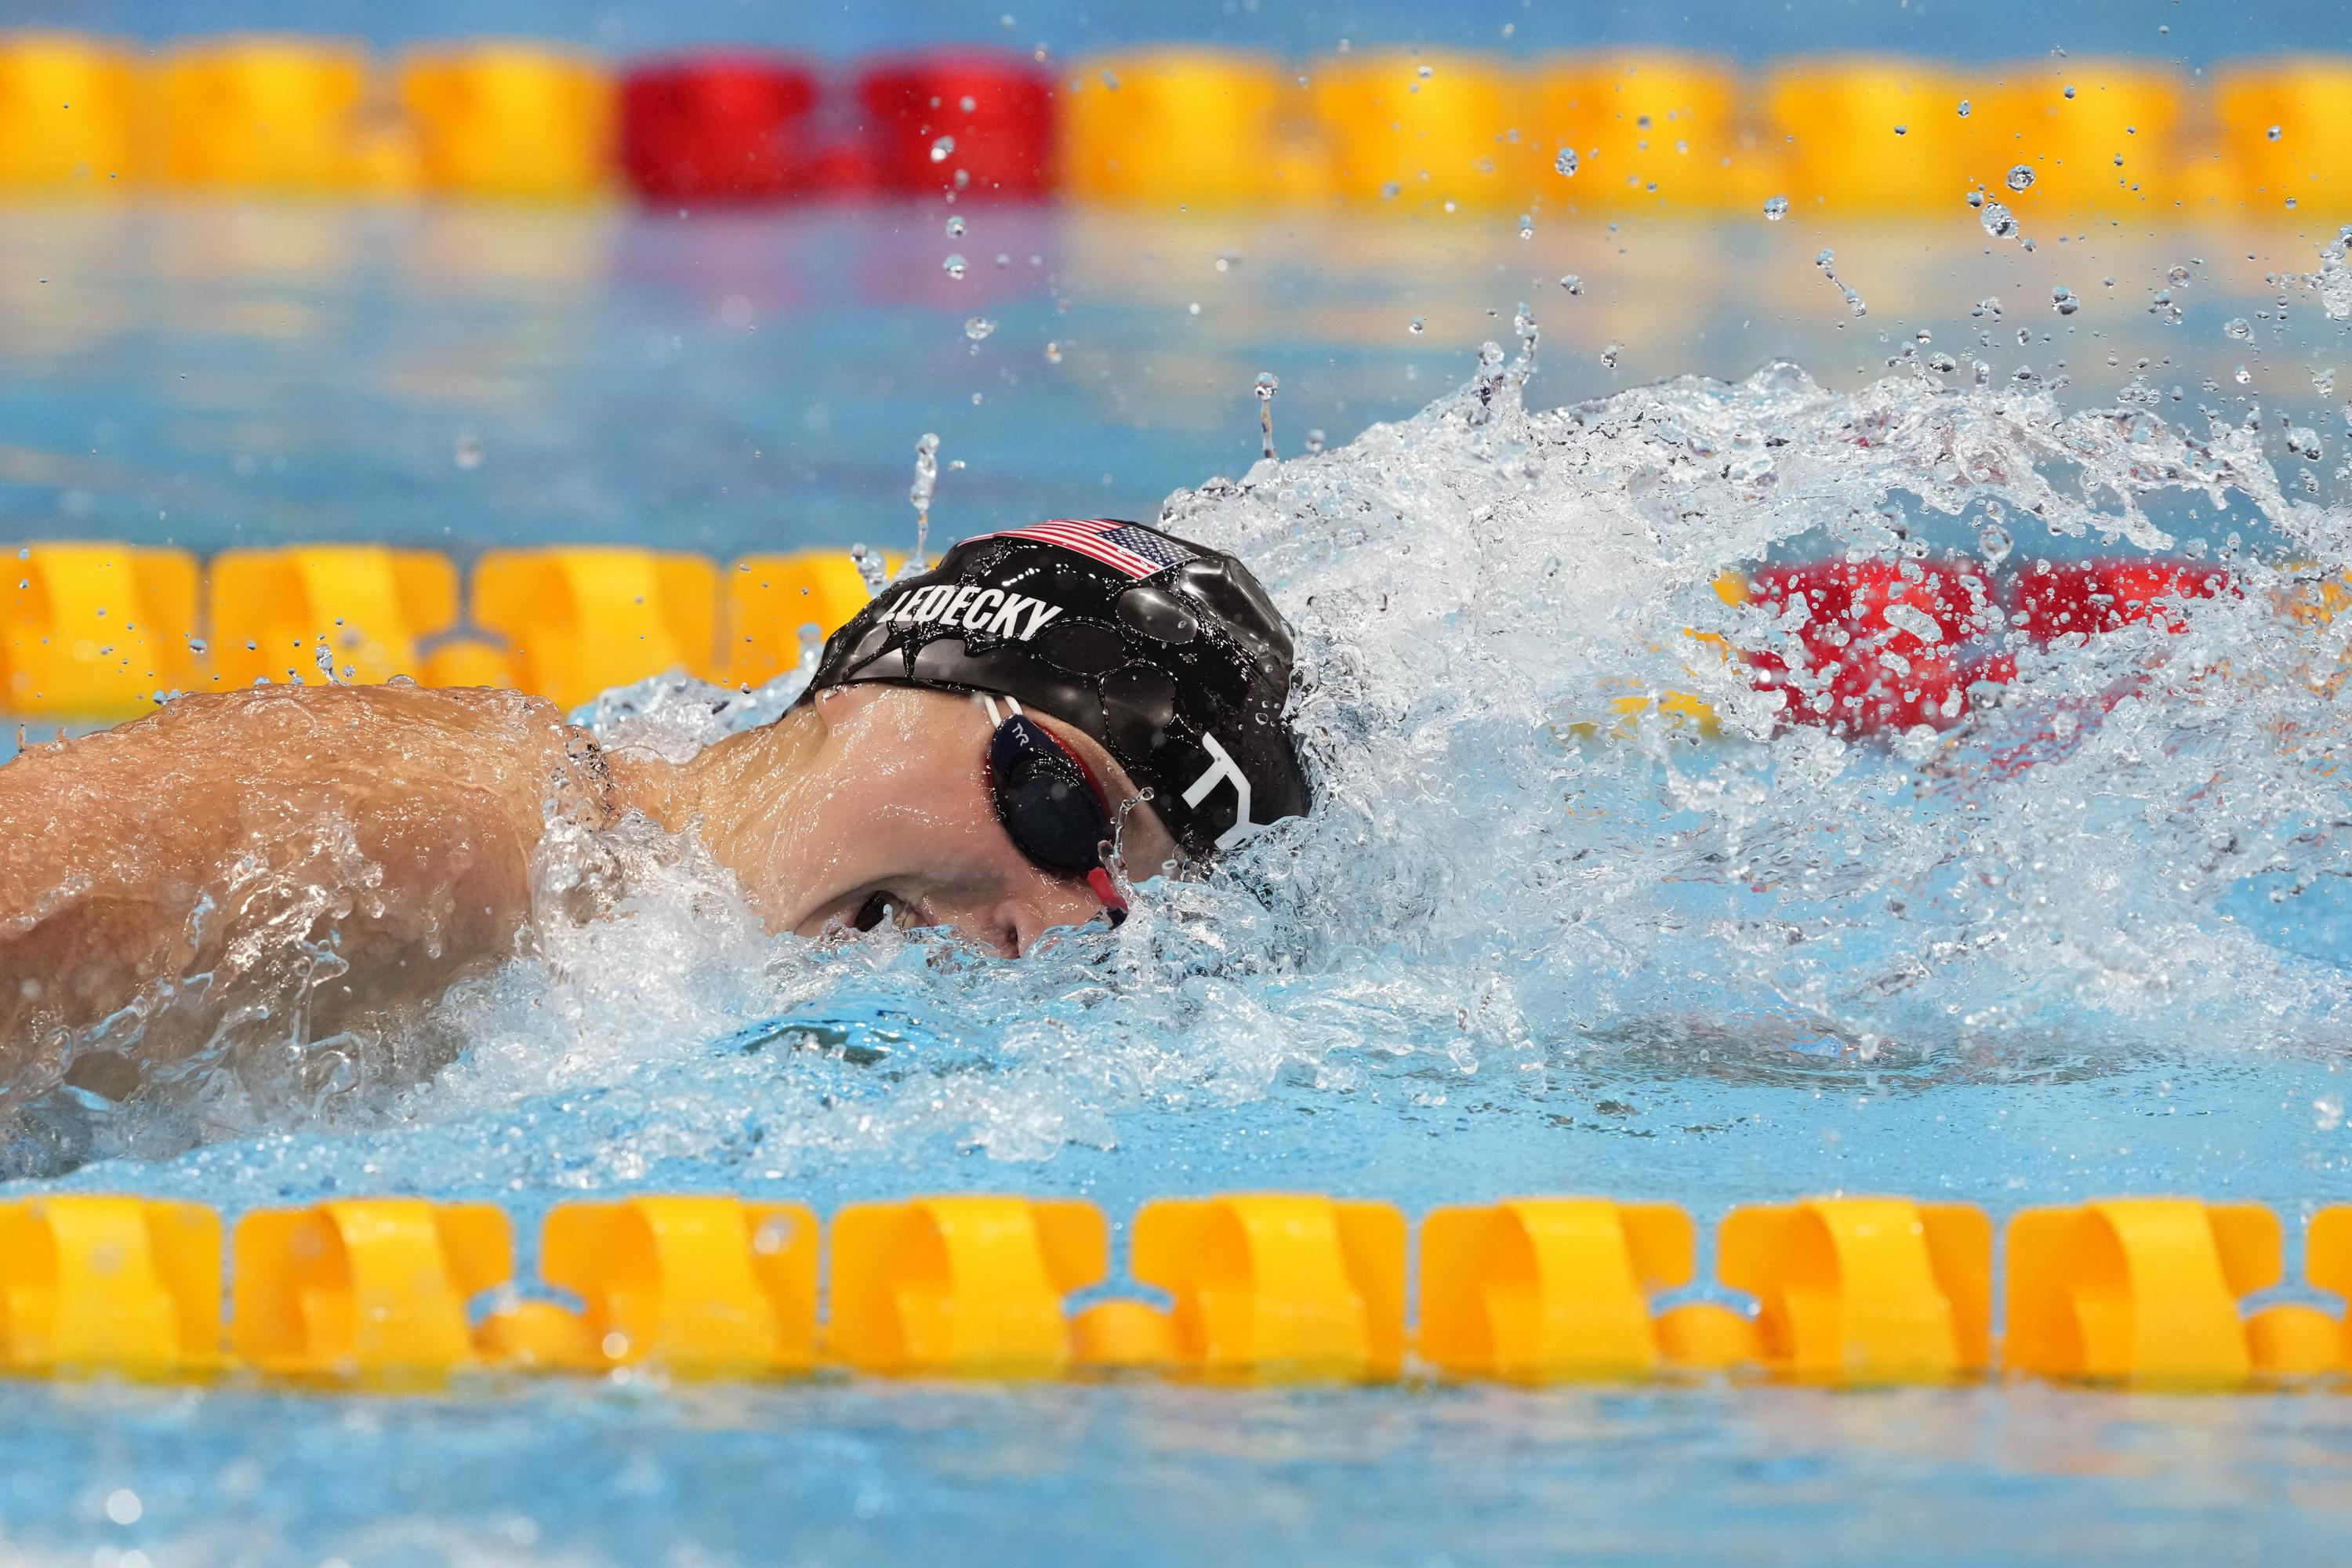 Olympics Latest: Ledecky denied gold in 400m freestyle